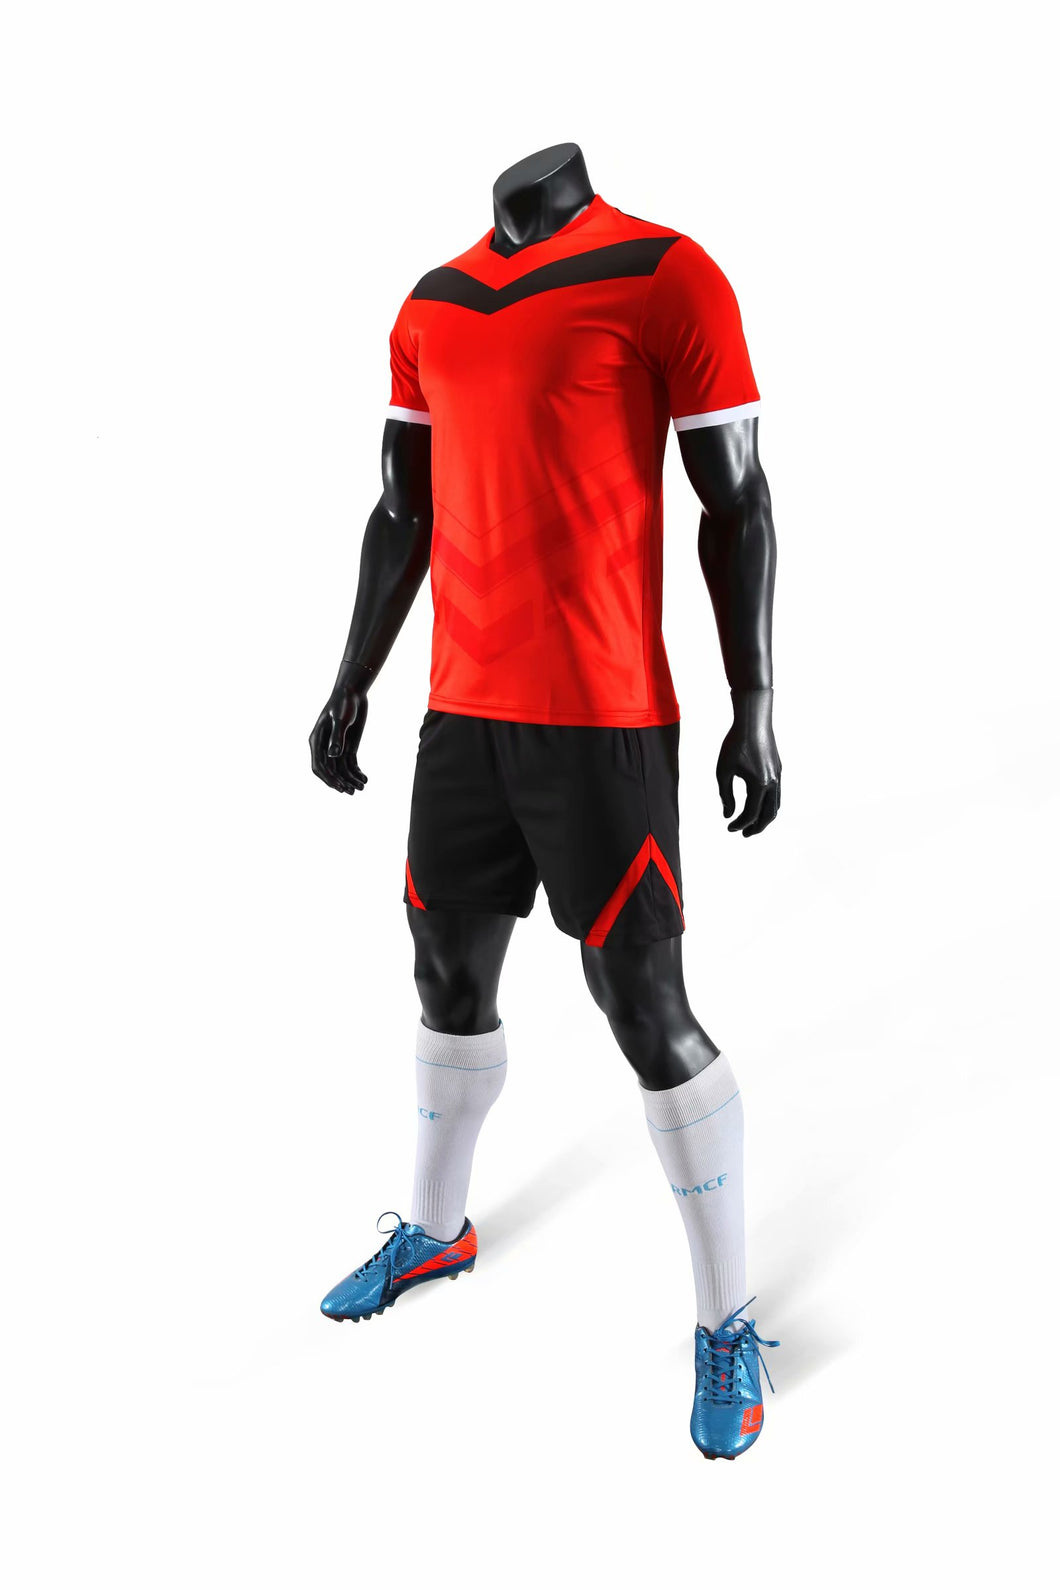 Junior Football Kit - Red and black arrow